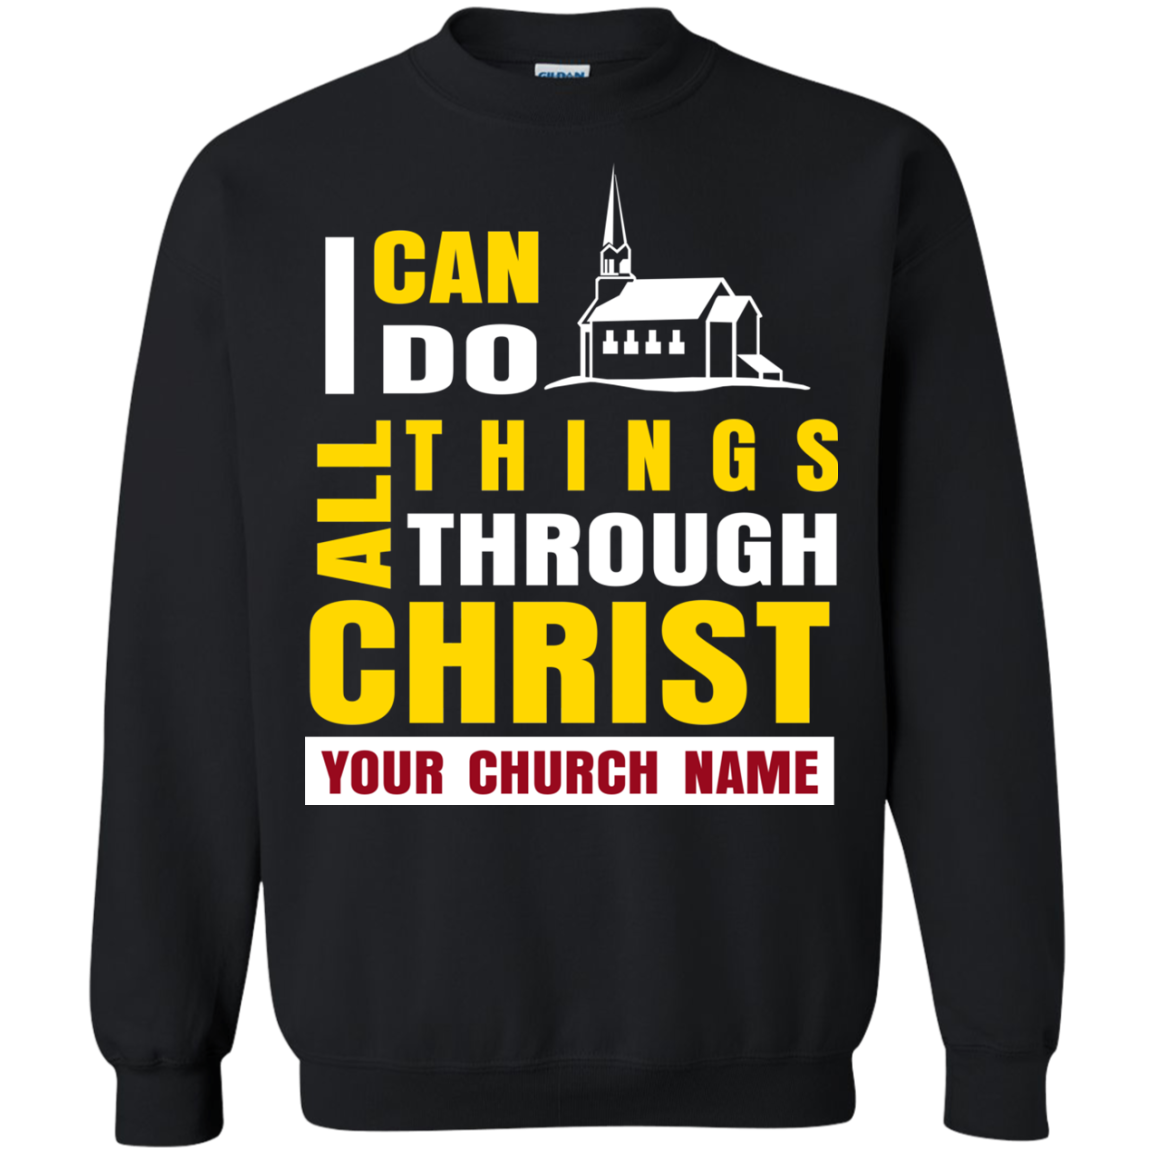 Christ T shirts I Can Do All Things Through Christ Hoodies Sweatshirts